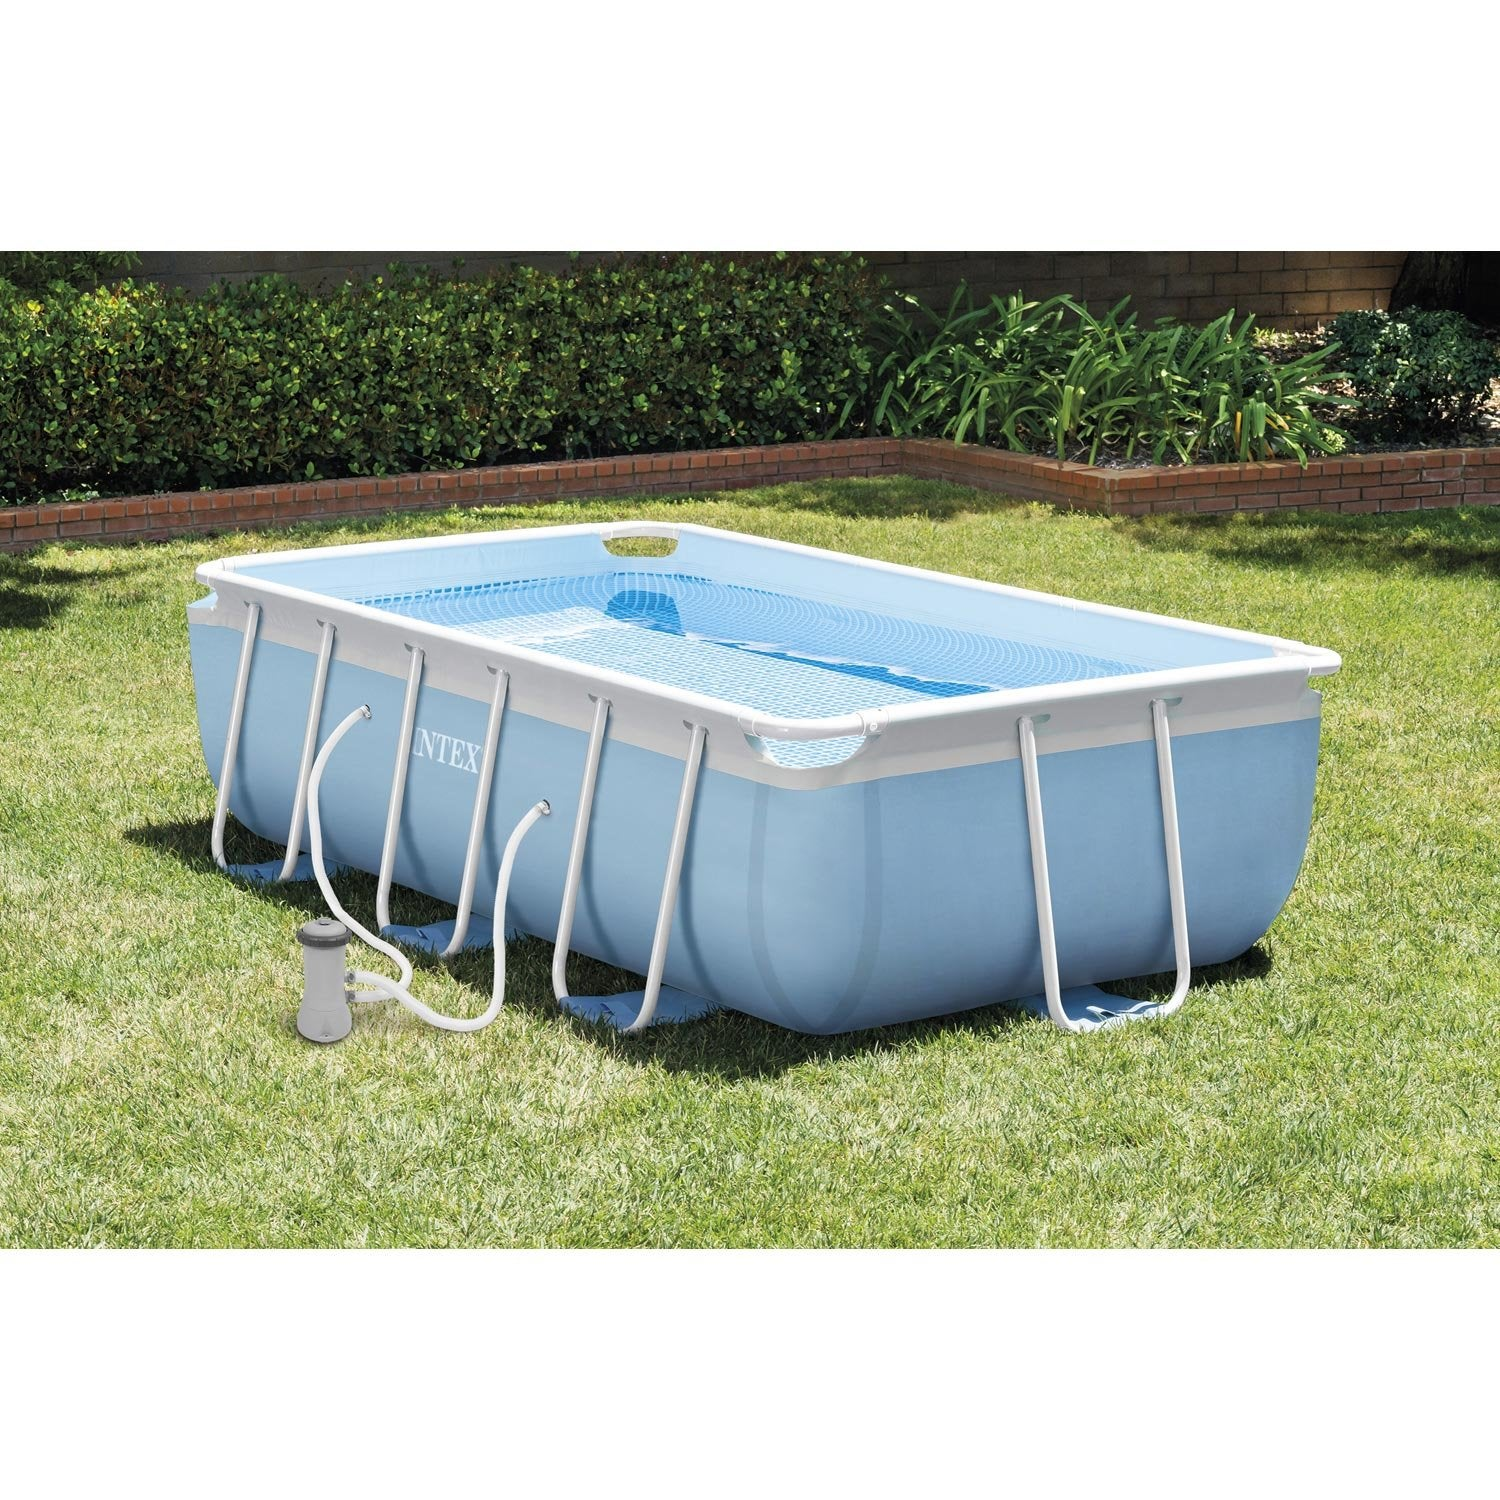 Piscine hors sol autoportante tubulaire intex l 3 4 x l 2 for Enrouleur bache piscine hors sol tubulaire intex